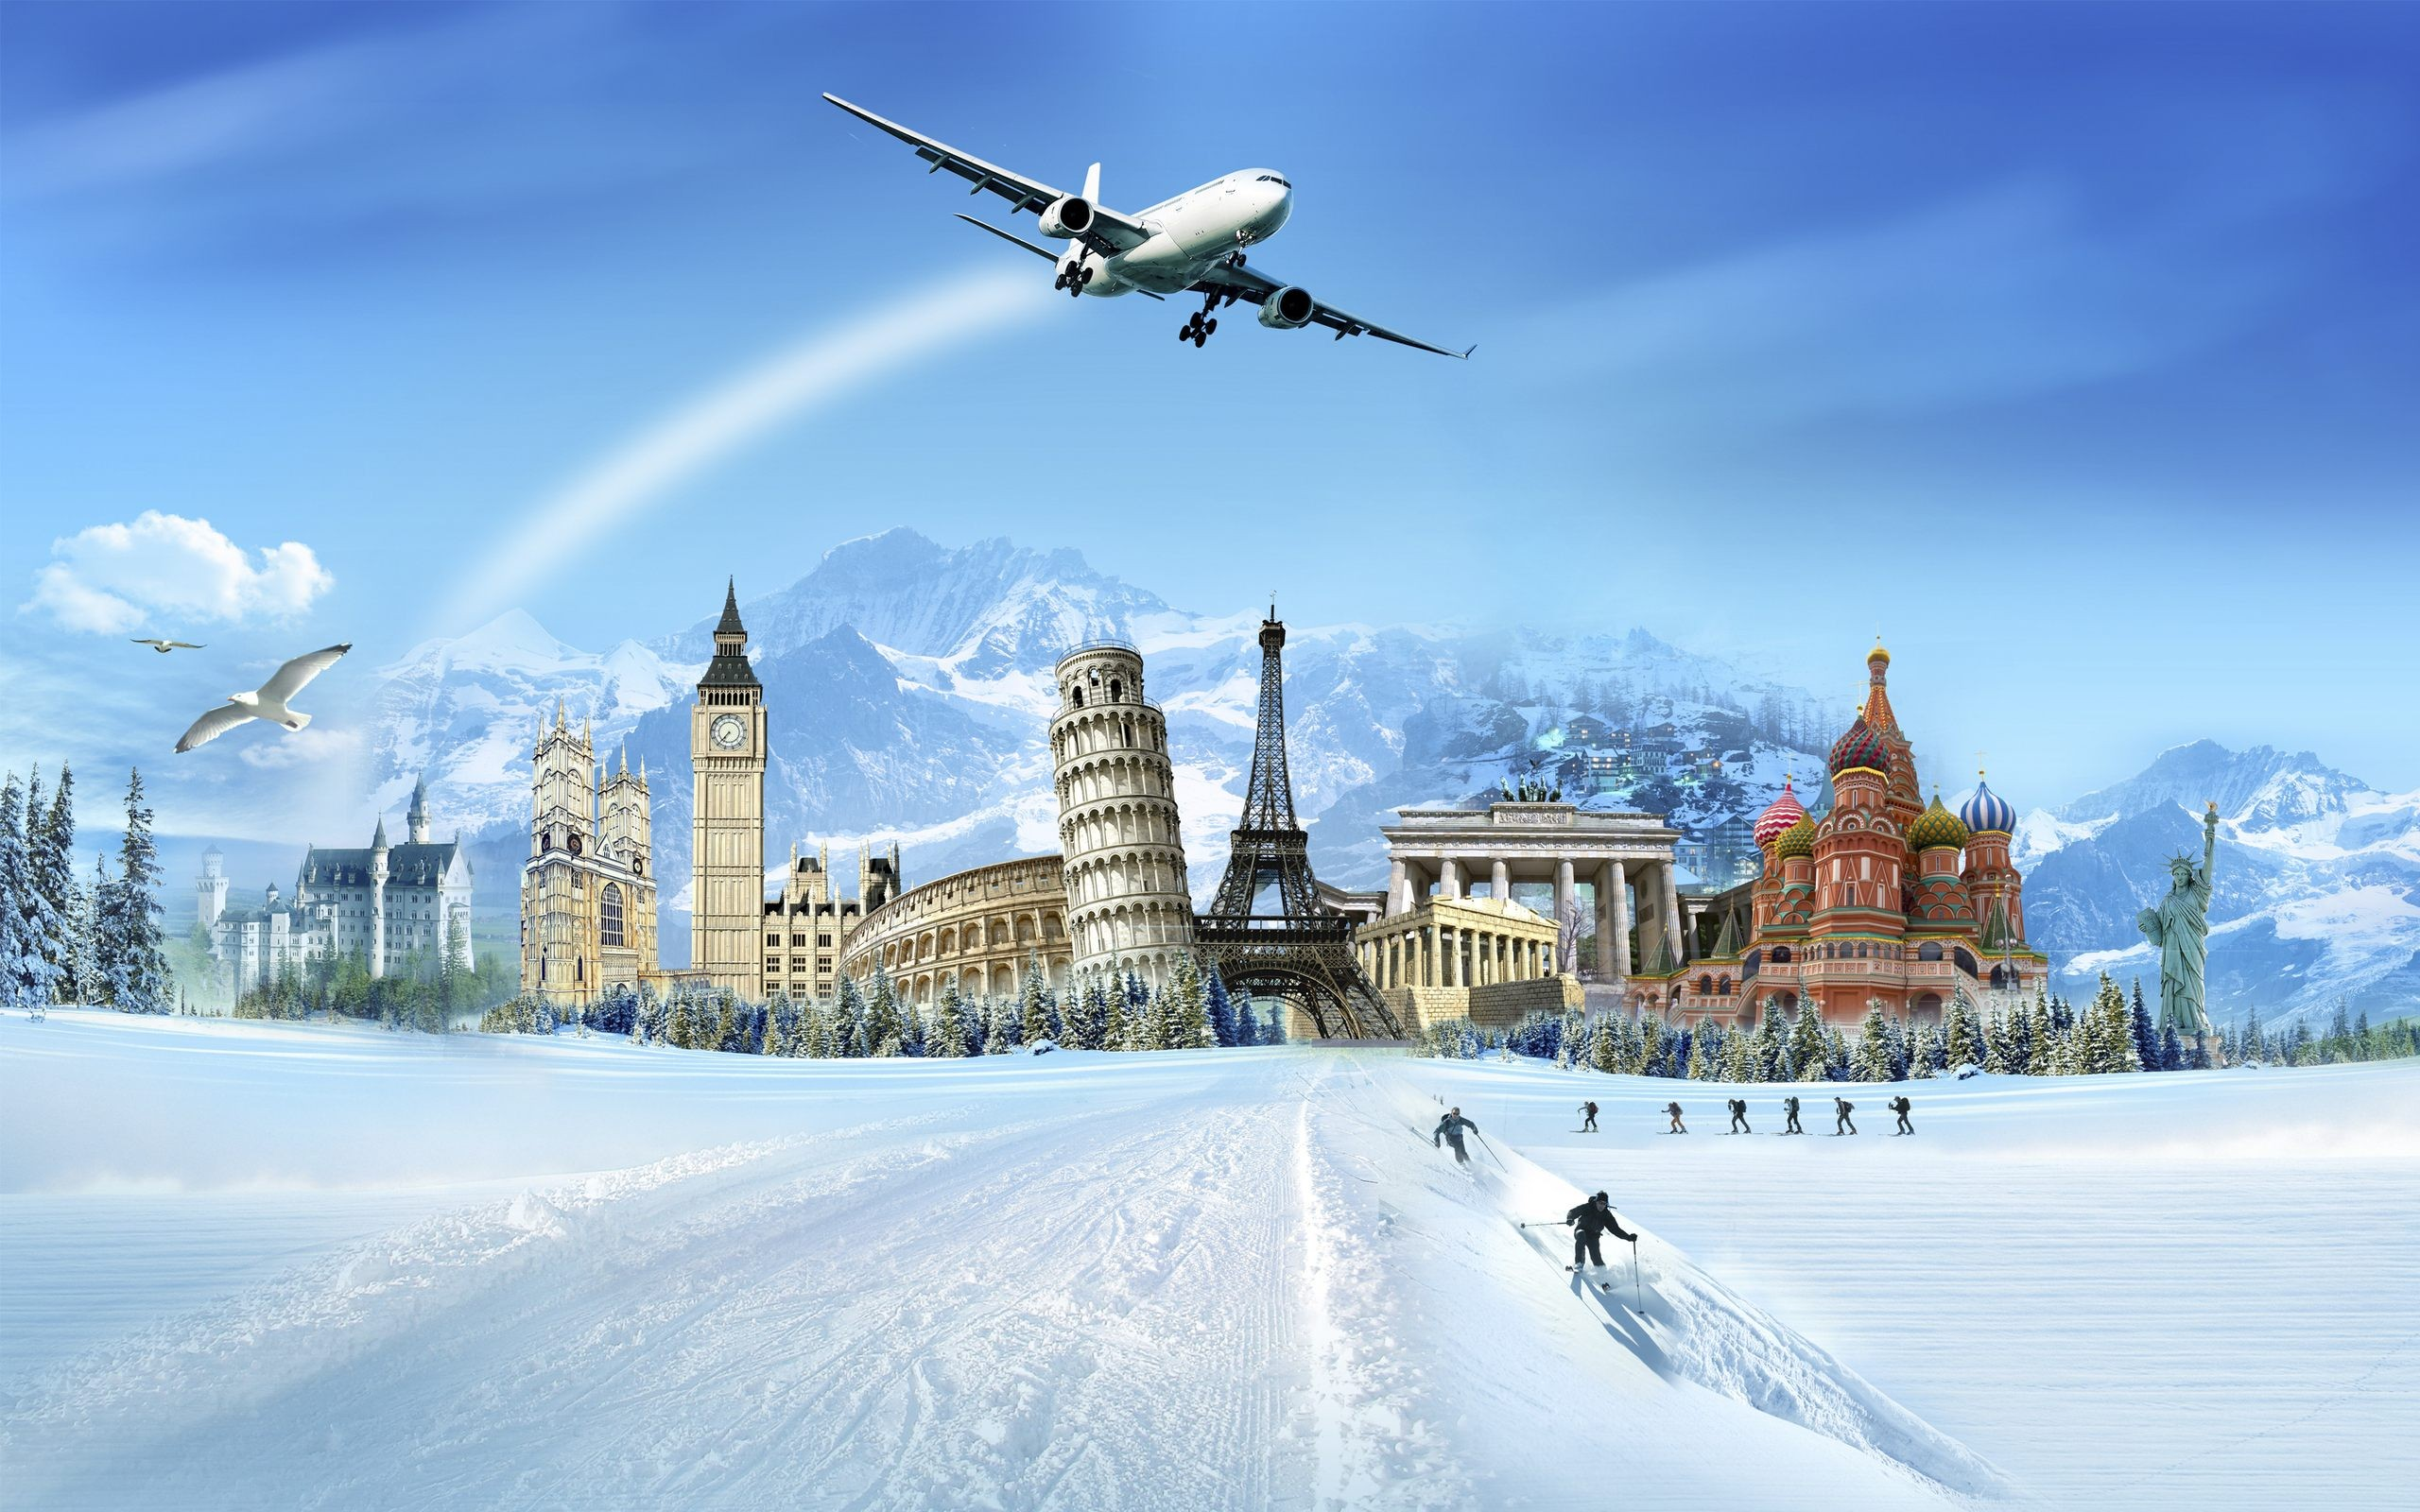 221111-travel-background-2560x1600-hd-for-mobile.jpg